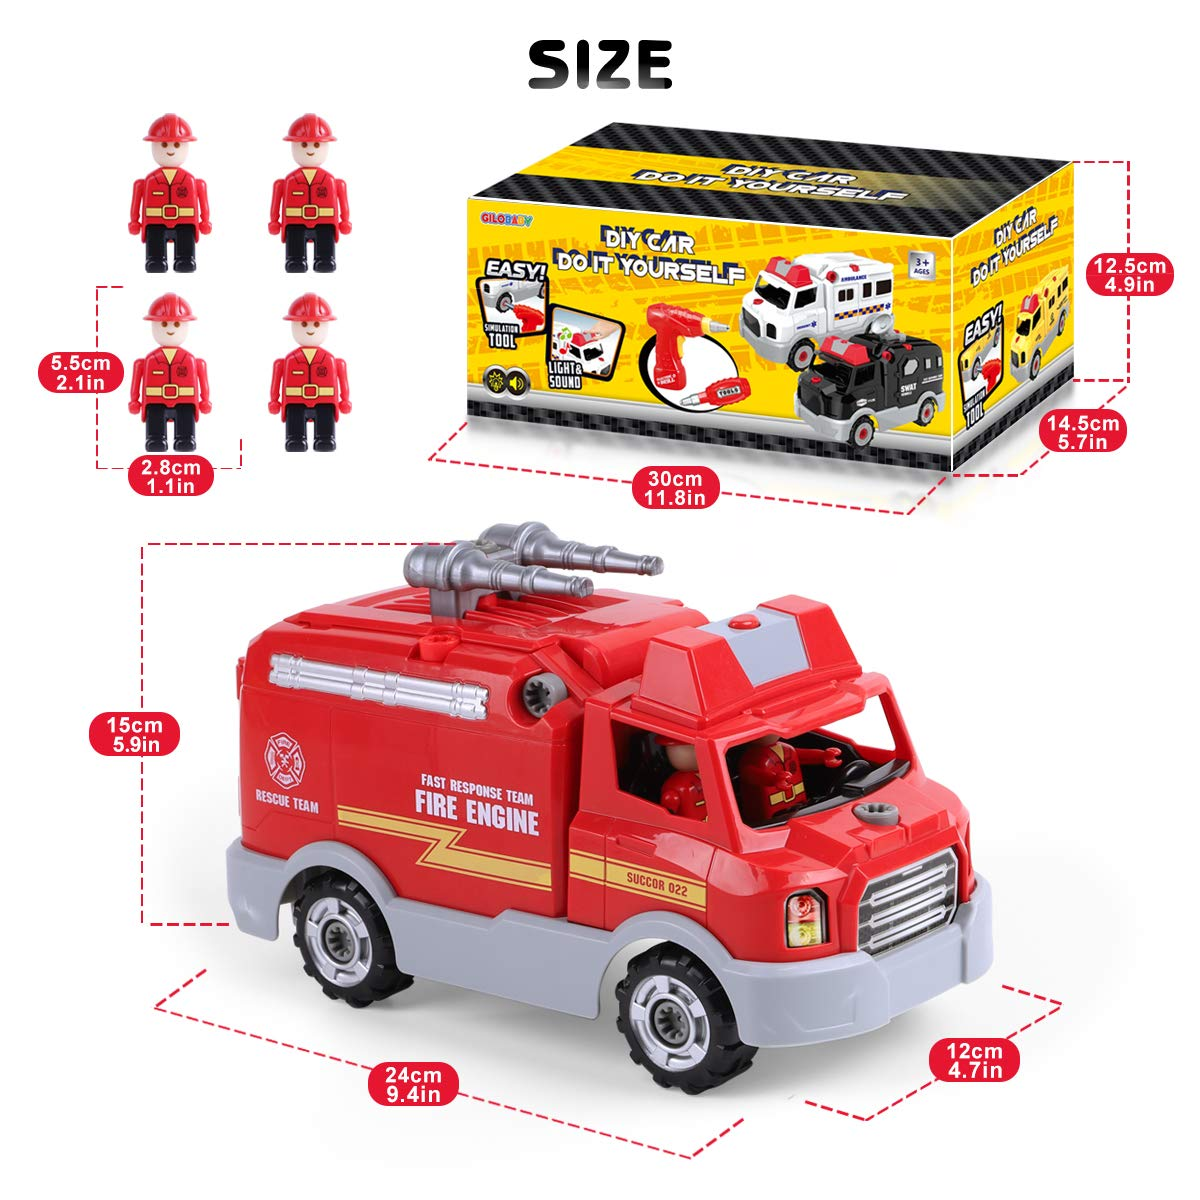 REMOKING STEM Learning Take Apart Toy for Boys & Girls, Build Your Own Car Toy Fire Truck Educational Playset with Tools and Power Drill, DIY Assembly Car with Realistic Sounds & Lights (3+ Ages) by REMOKING (Image #7)